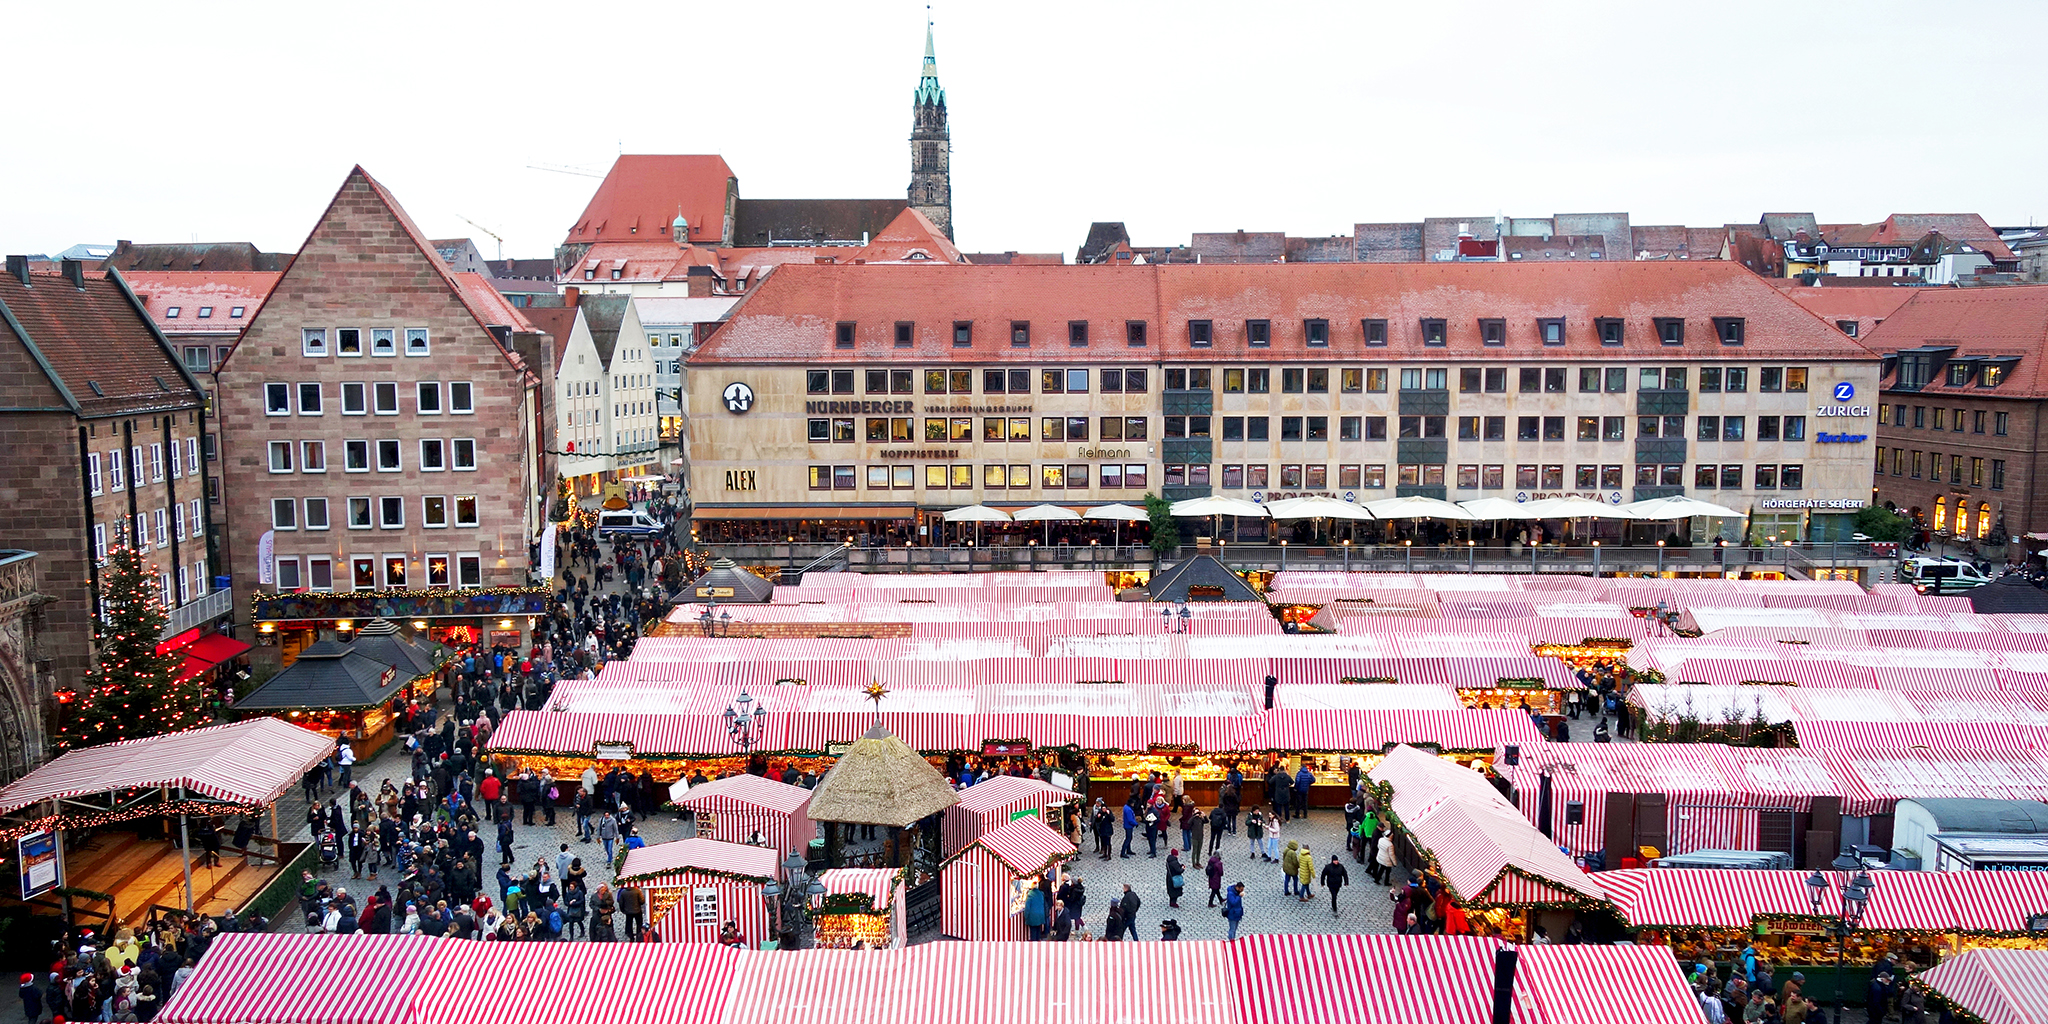 Nuremberg Christmas Market.The World Famous Christmas Market Of Nuremberg I Out Of The